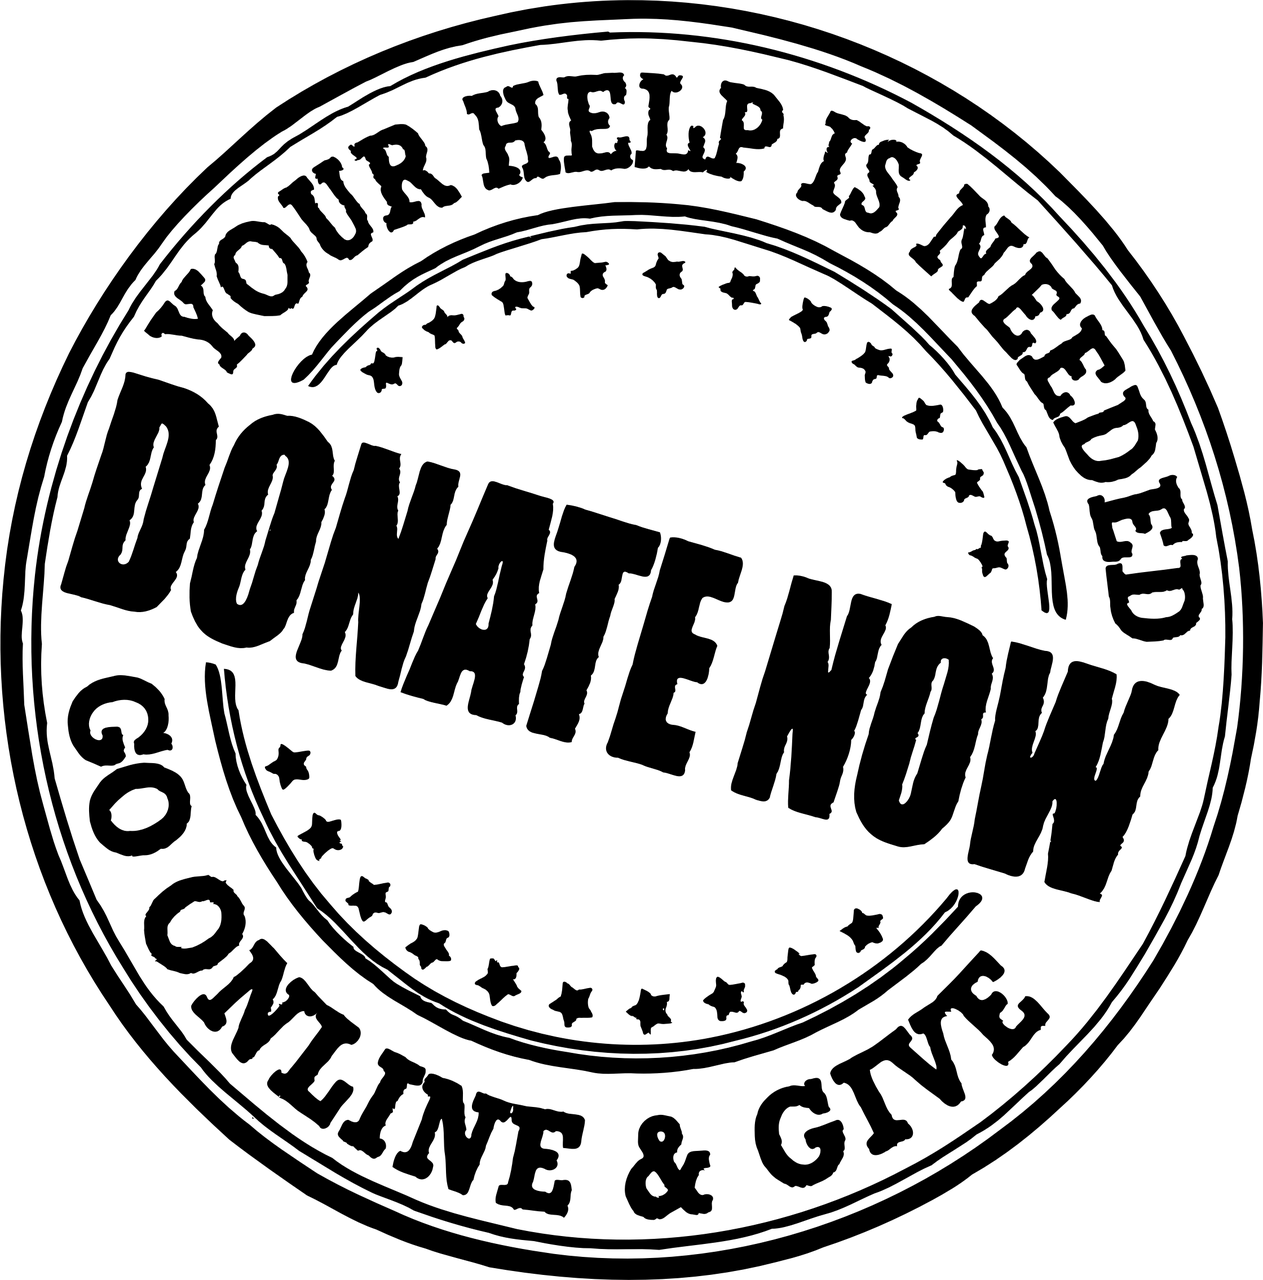 Should Companies Solicit Employee Donations To Company